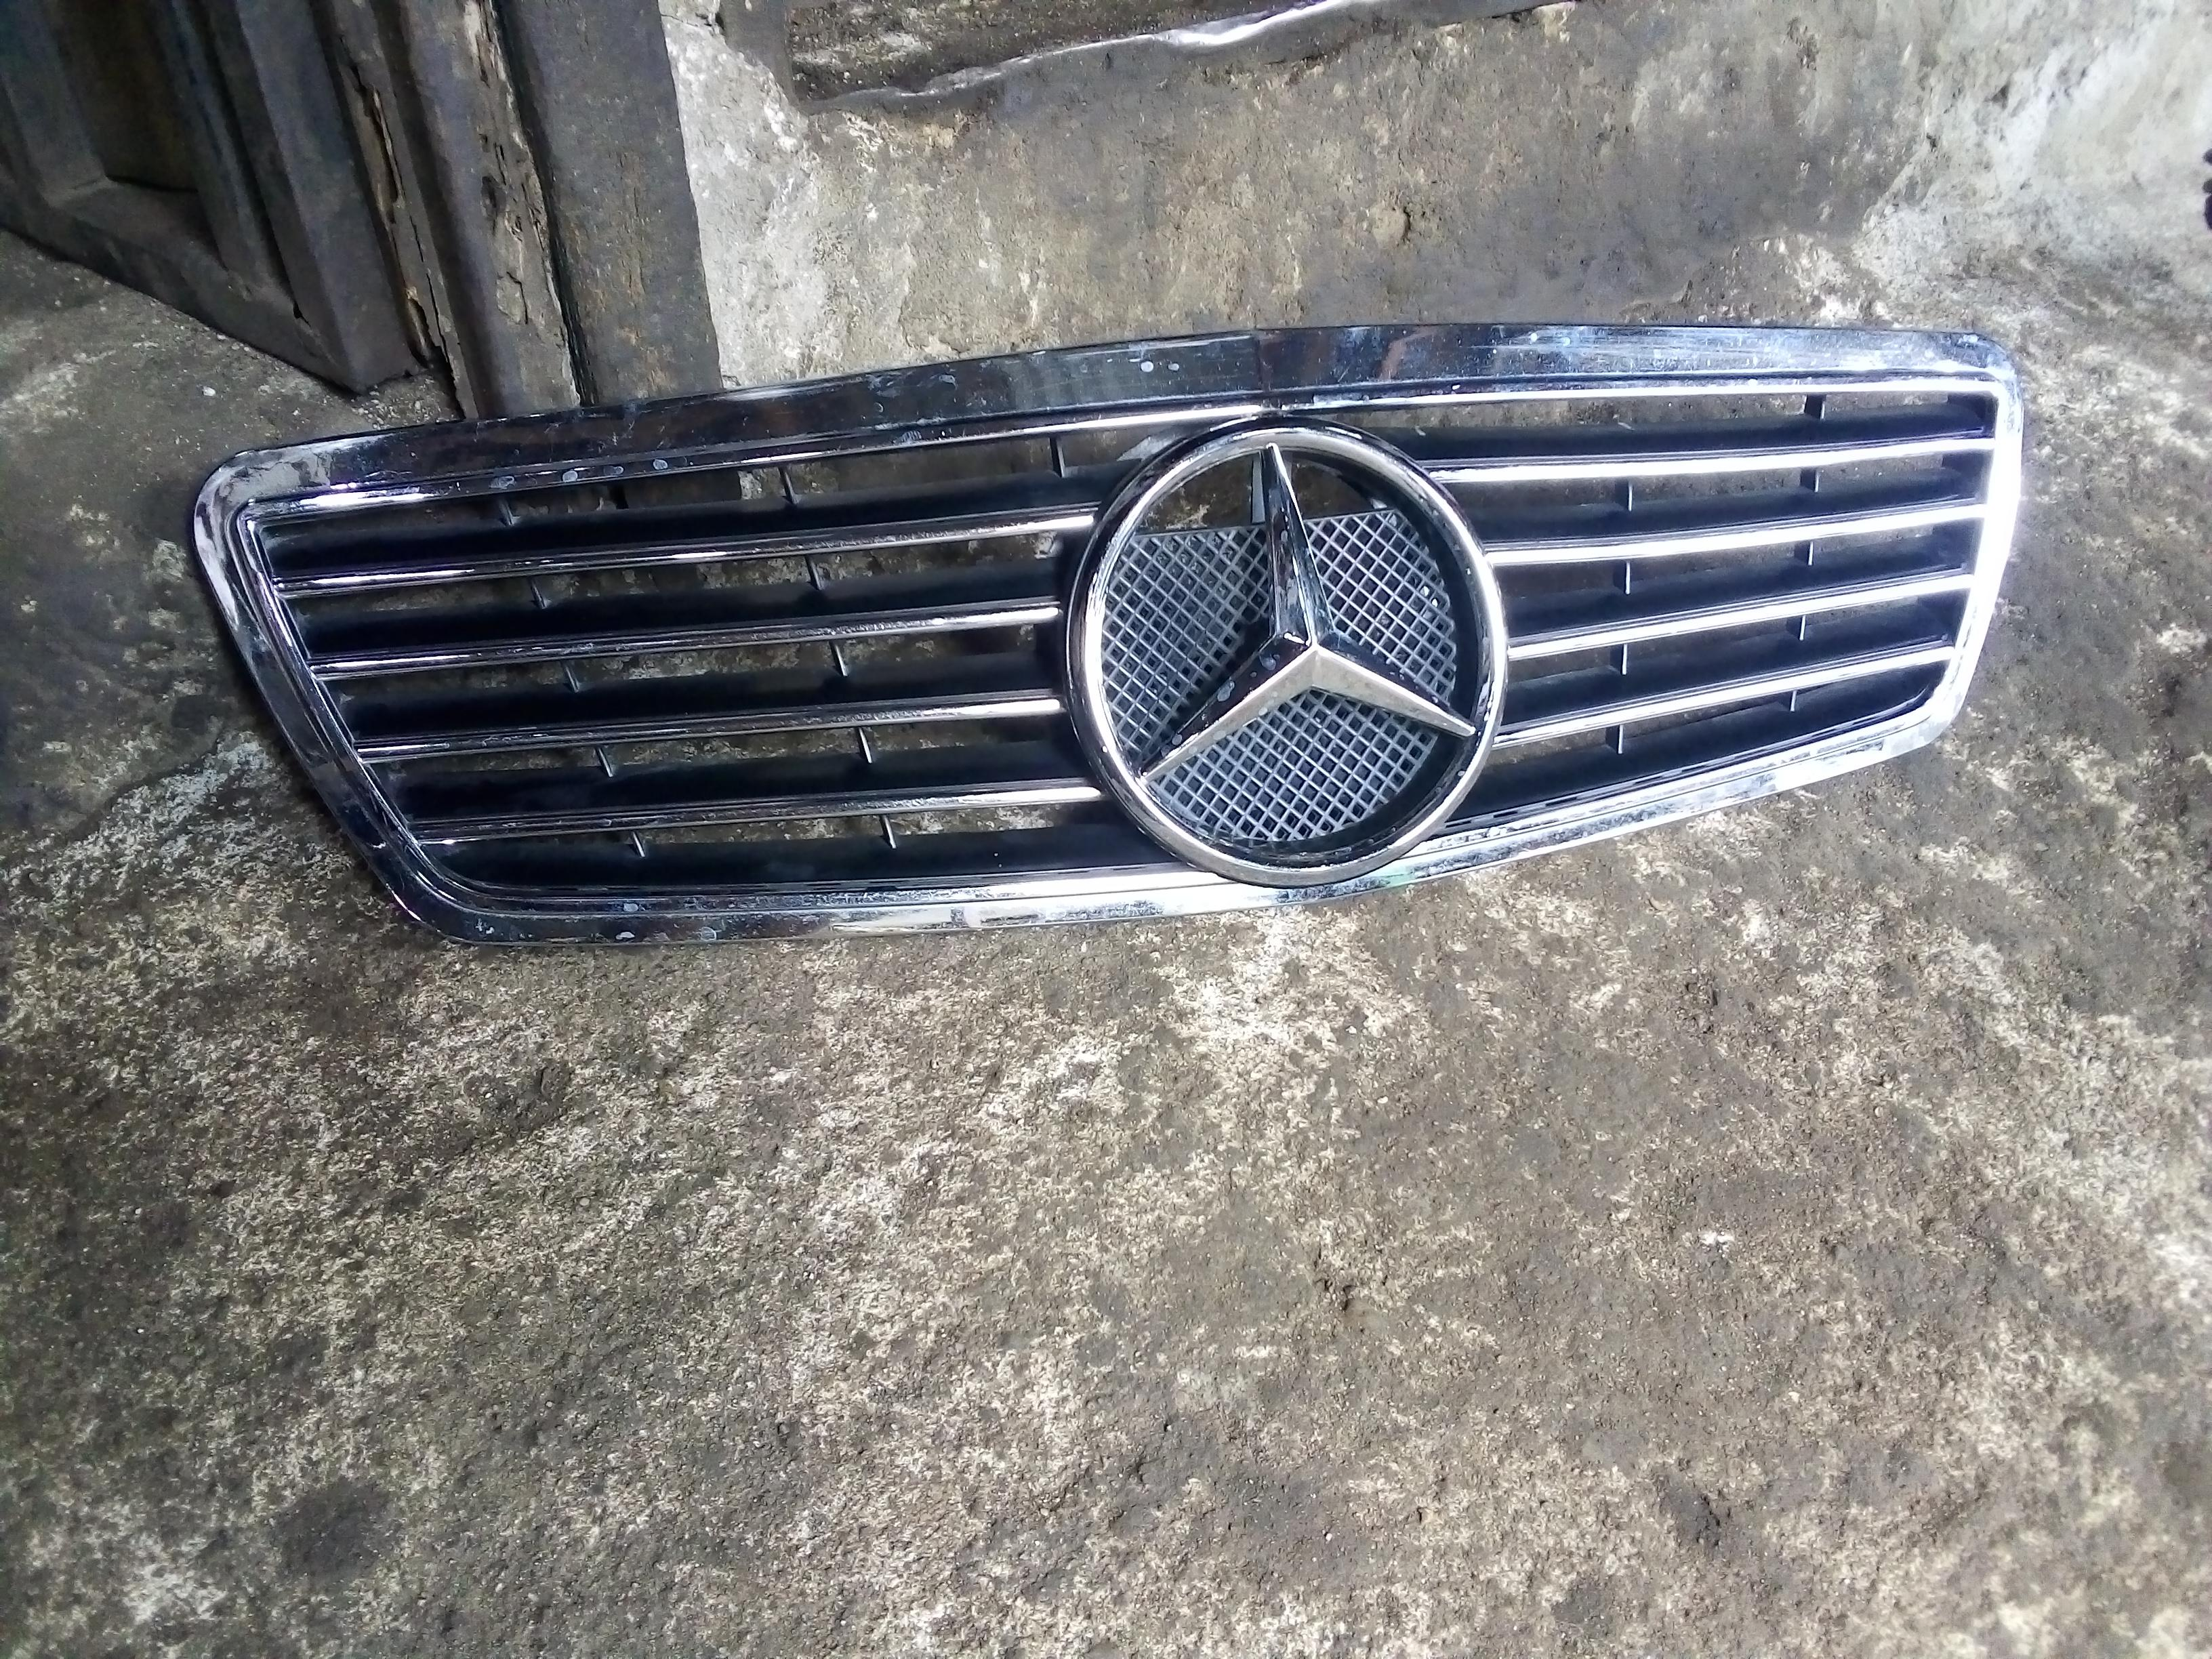 FAIRLY USED FRONT GRILLE